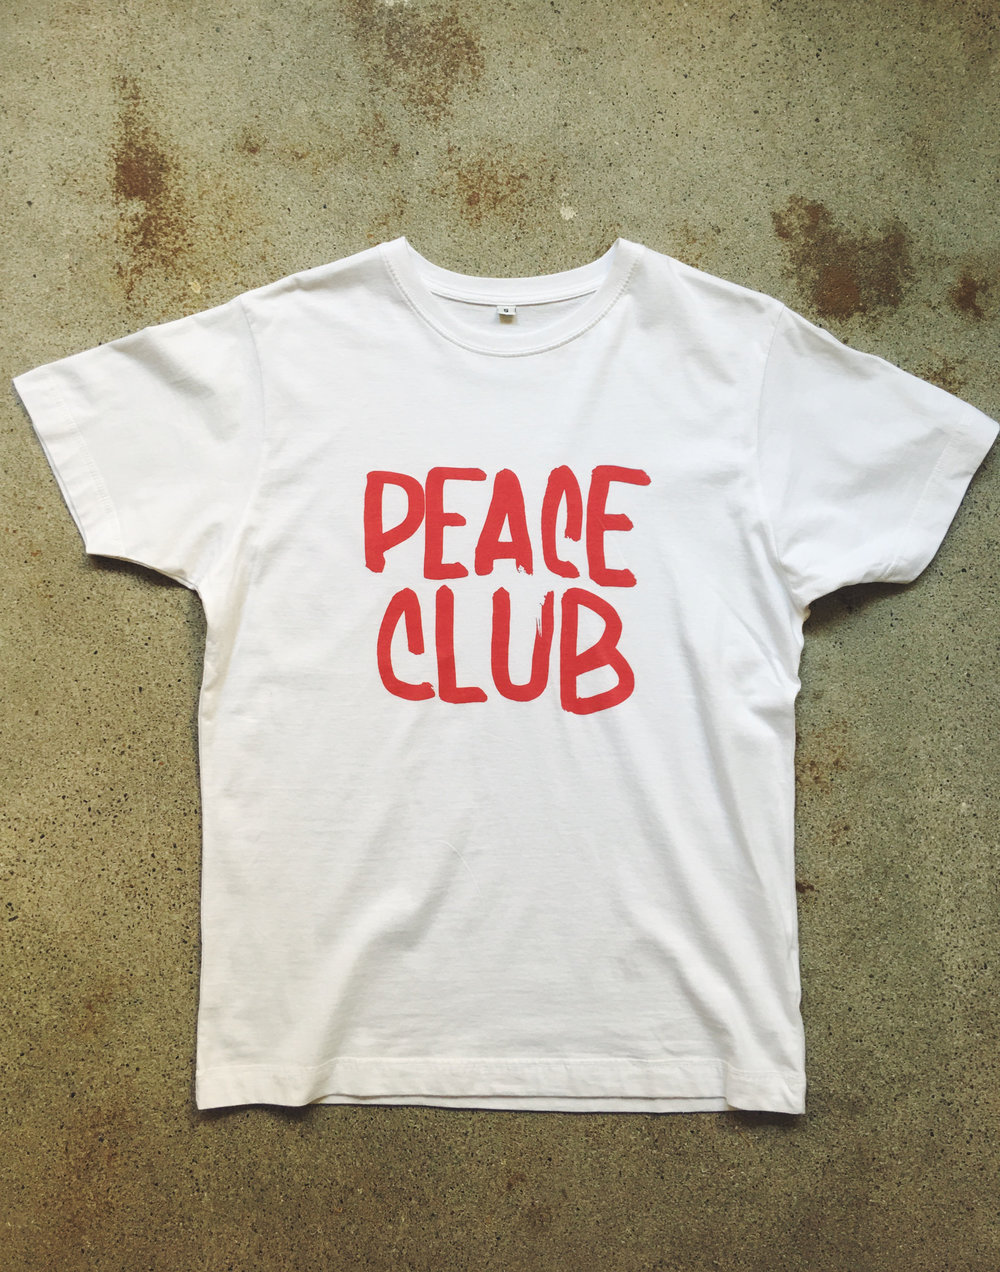 peace_club_statement_campaign_peace_humanity